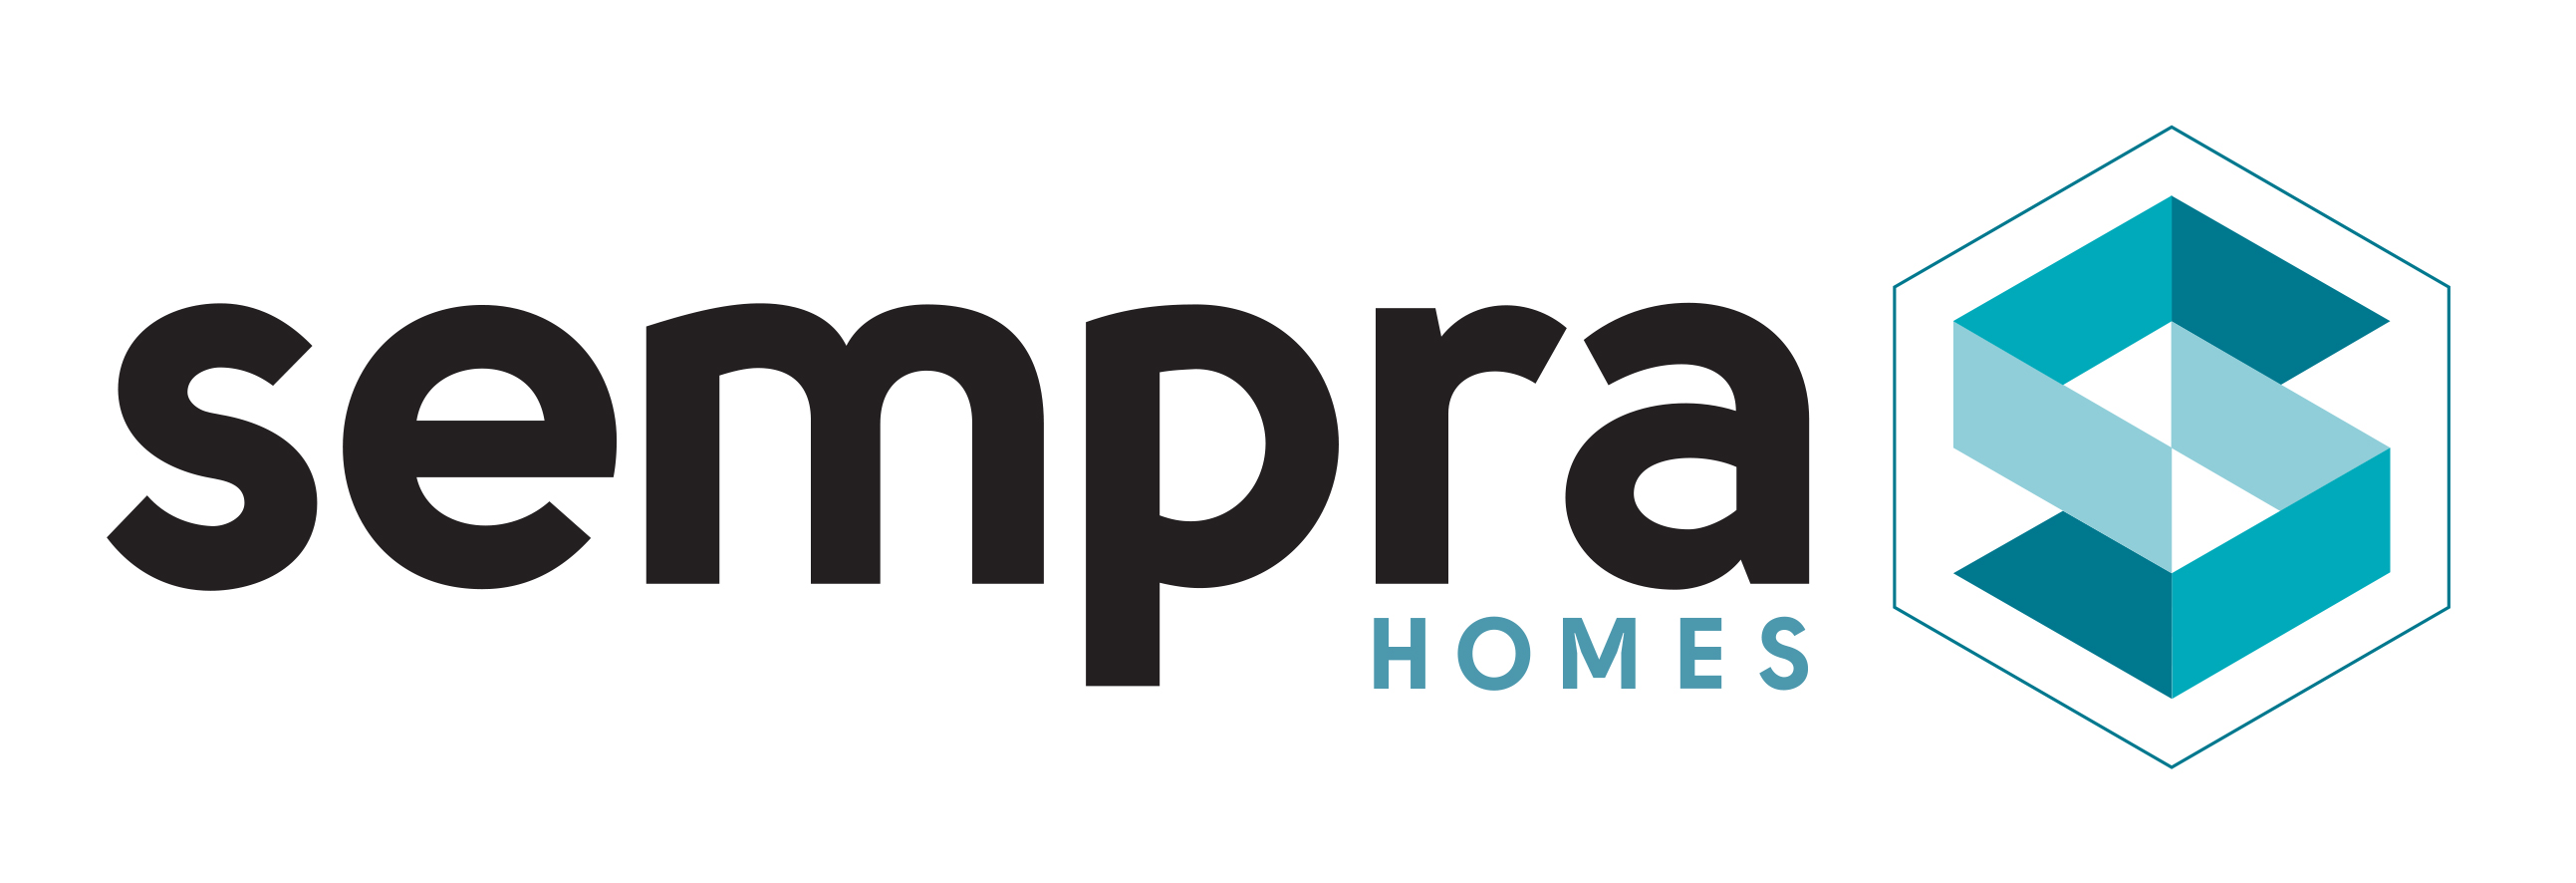 About Sempra Homes Image